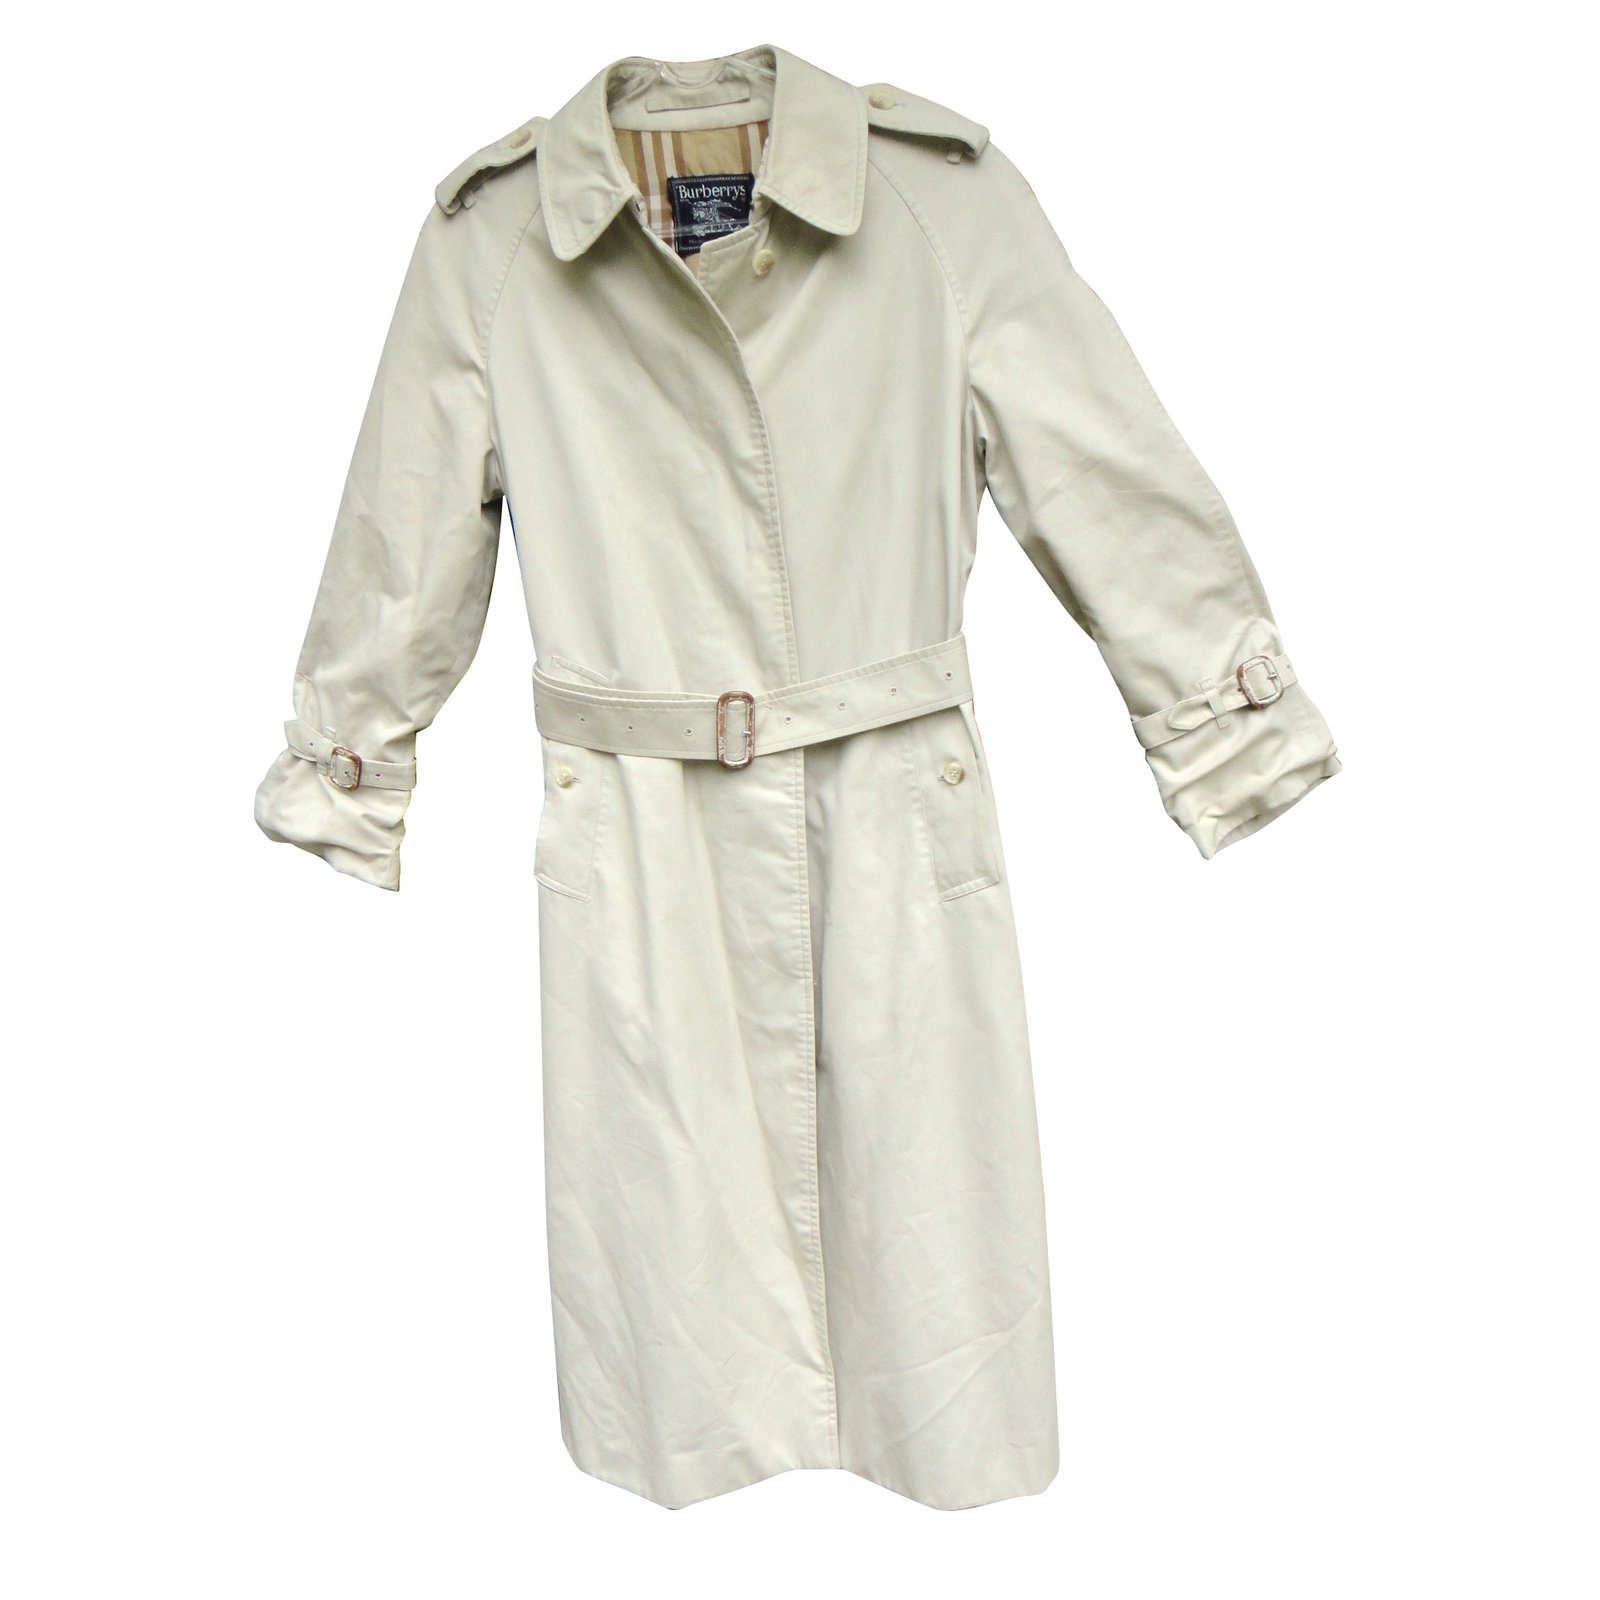 Burberry Trench coat Trench coats Cotton,Polyester Eggshell ref.43147 bcafa20c6d8